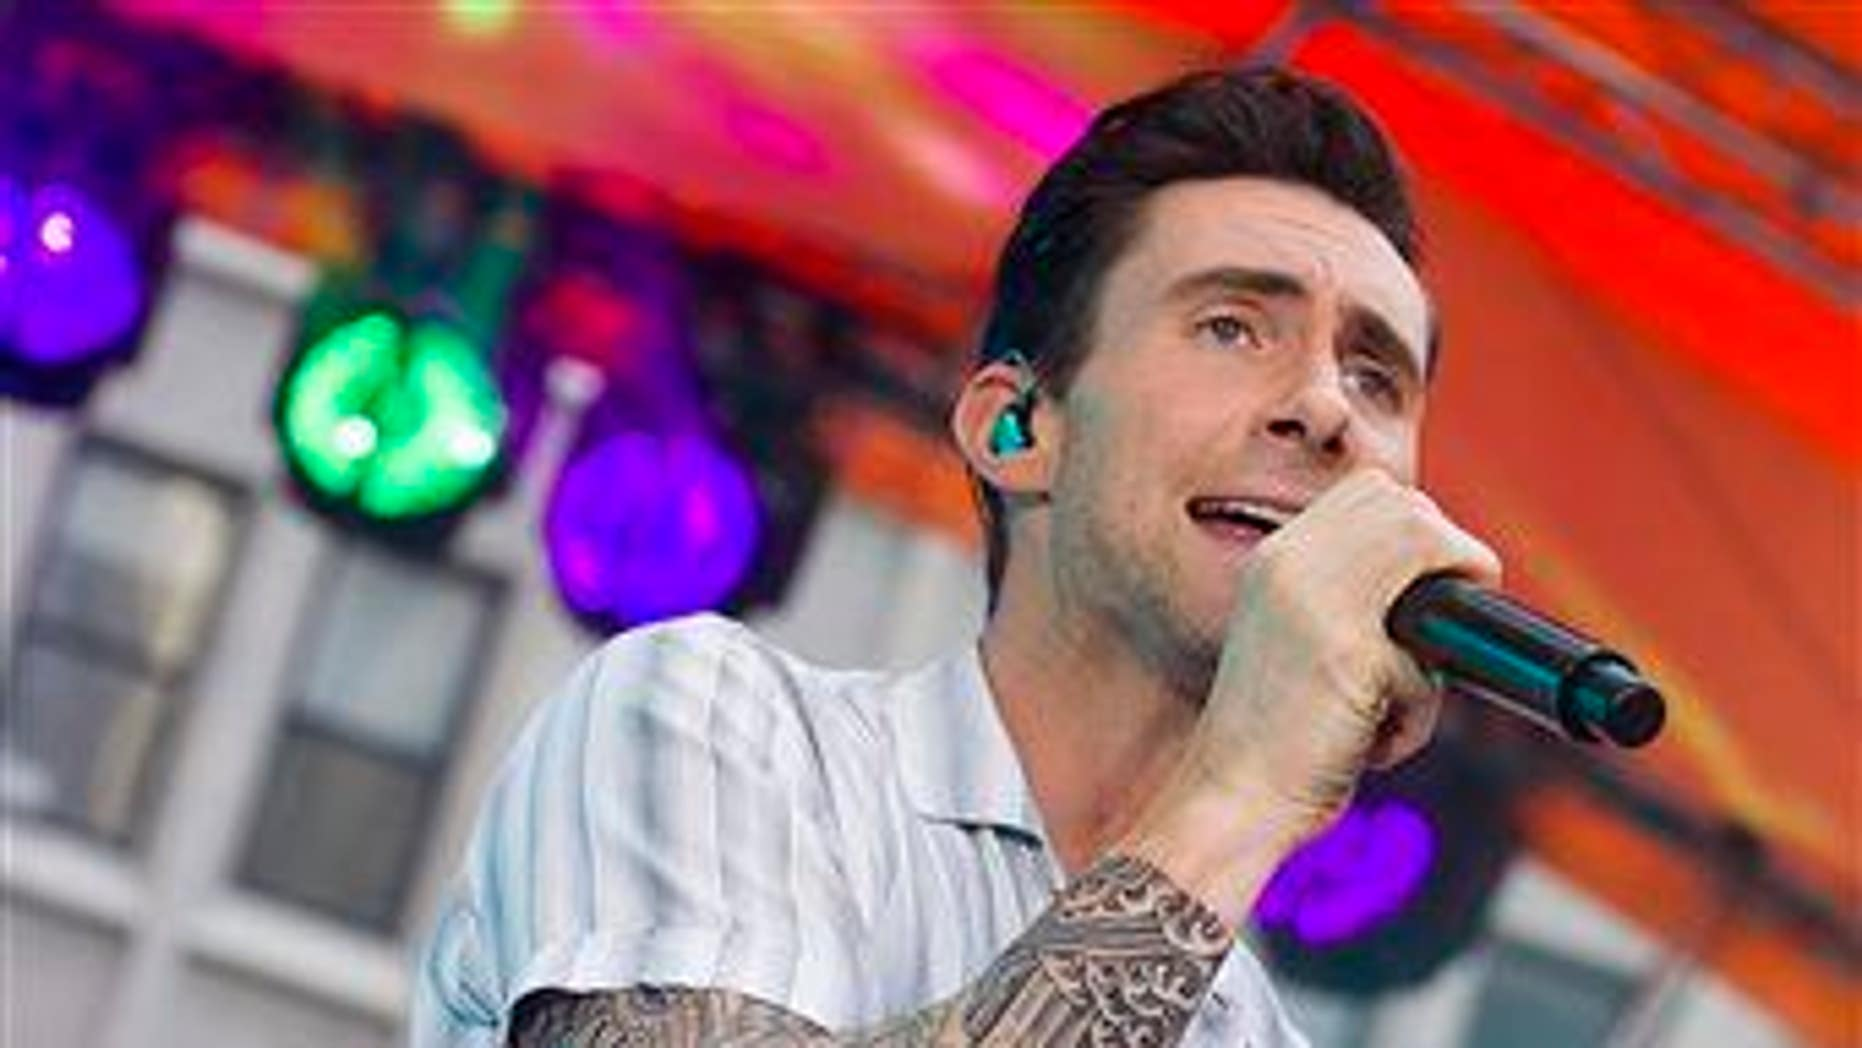 Adam Levine from Maroon 5 performs.